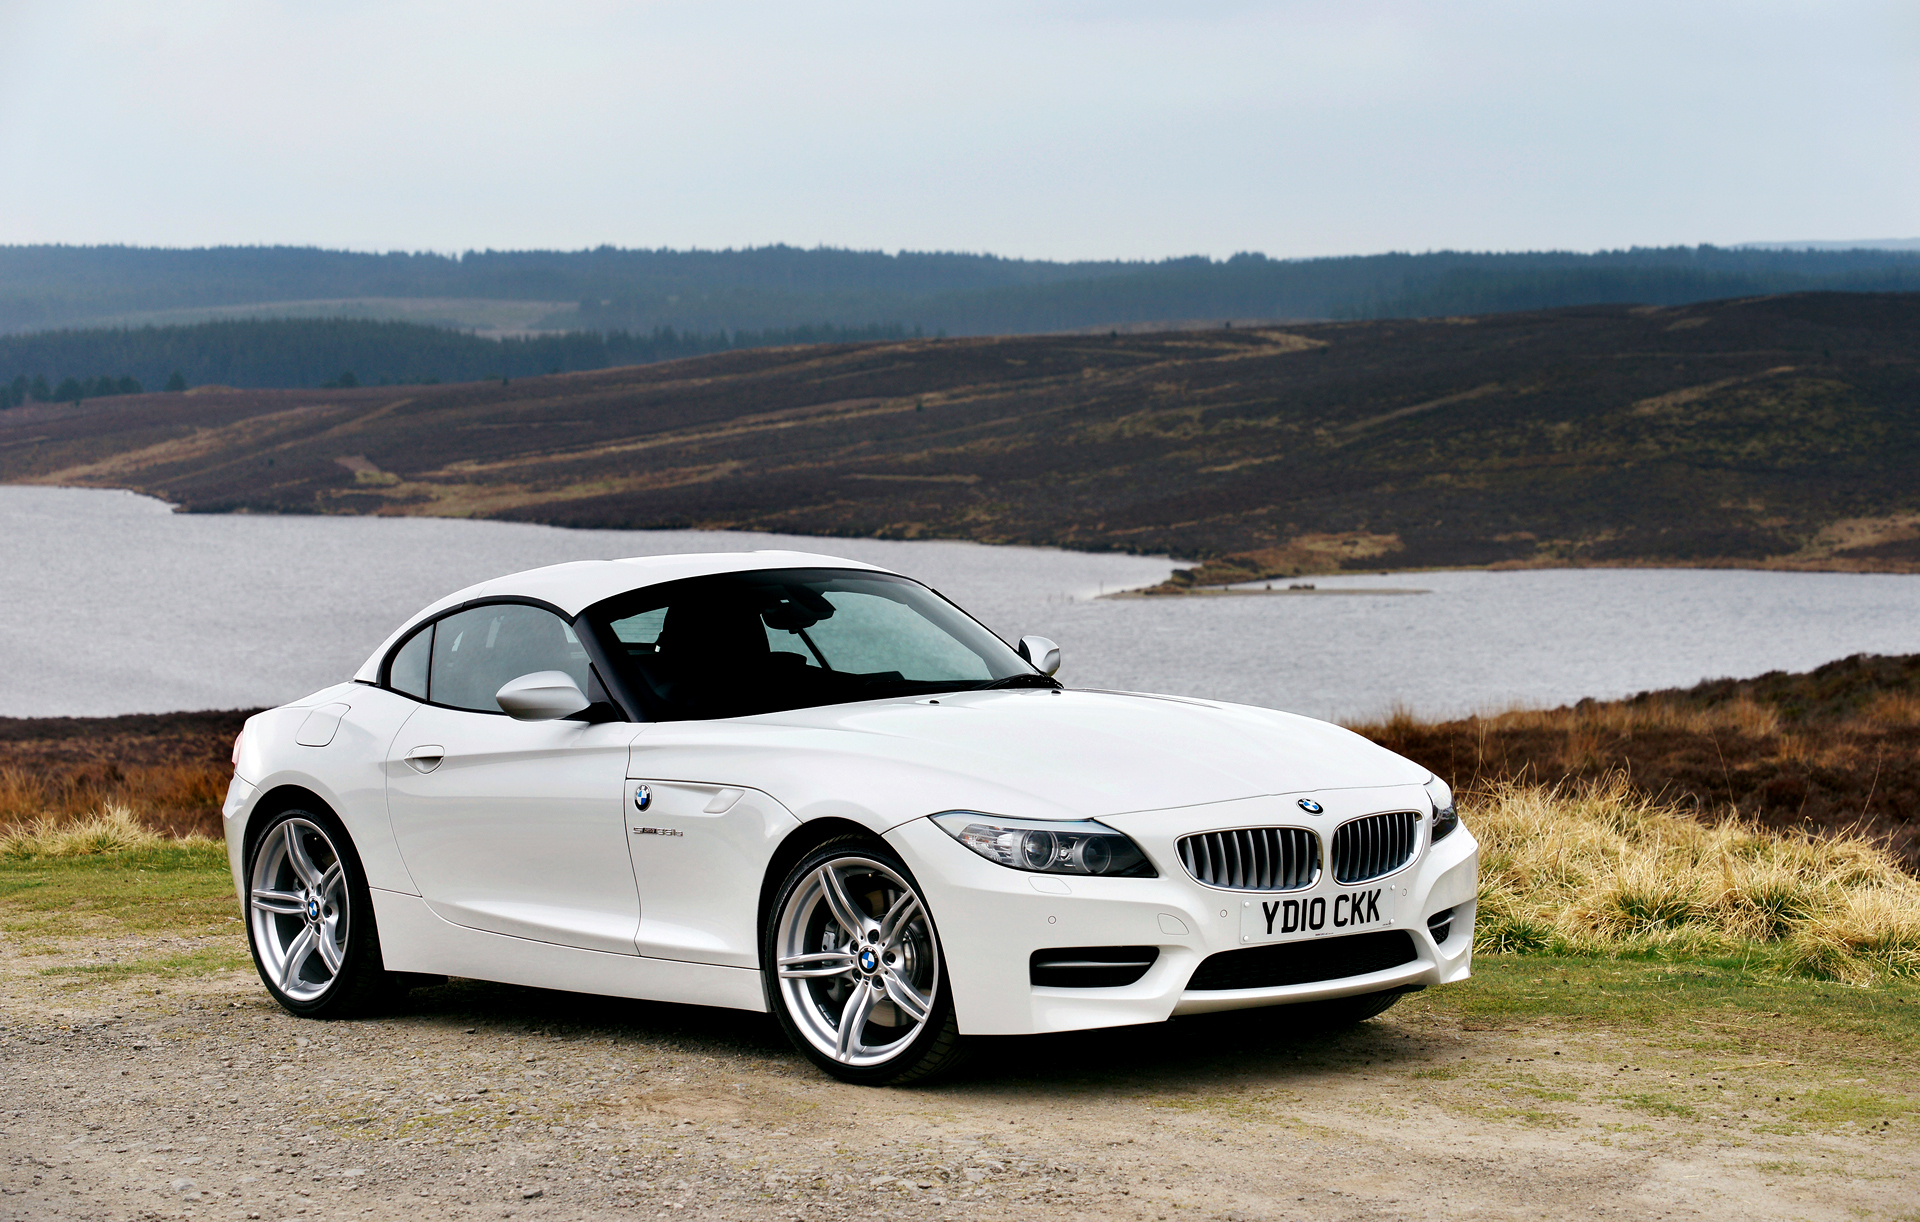 BMW 2011 Z4 sDrive35is range